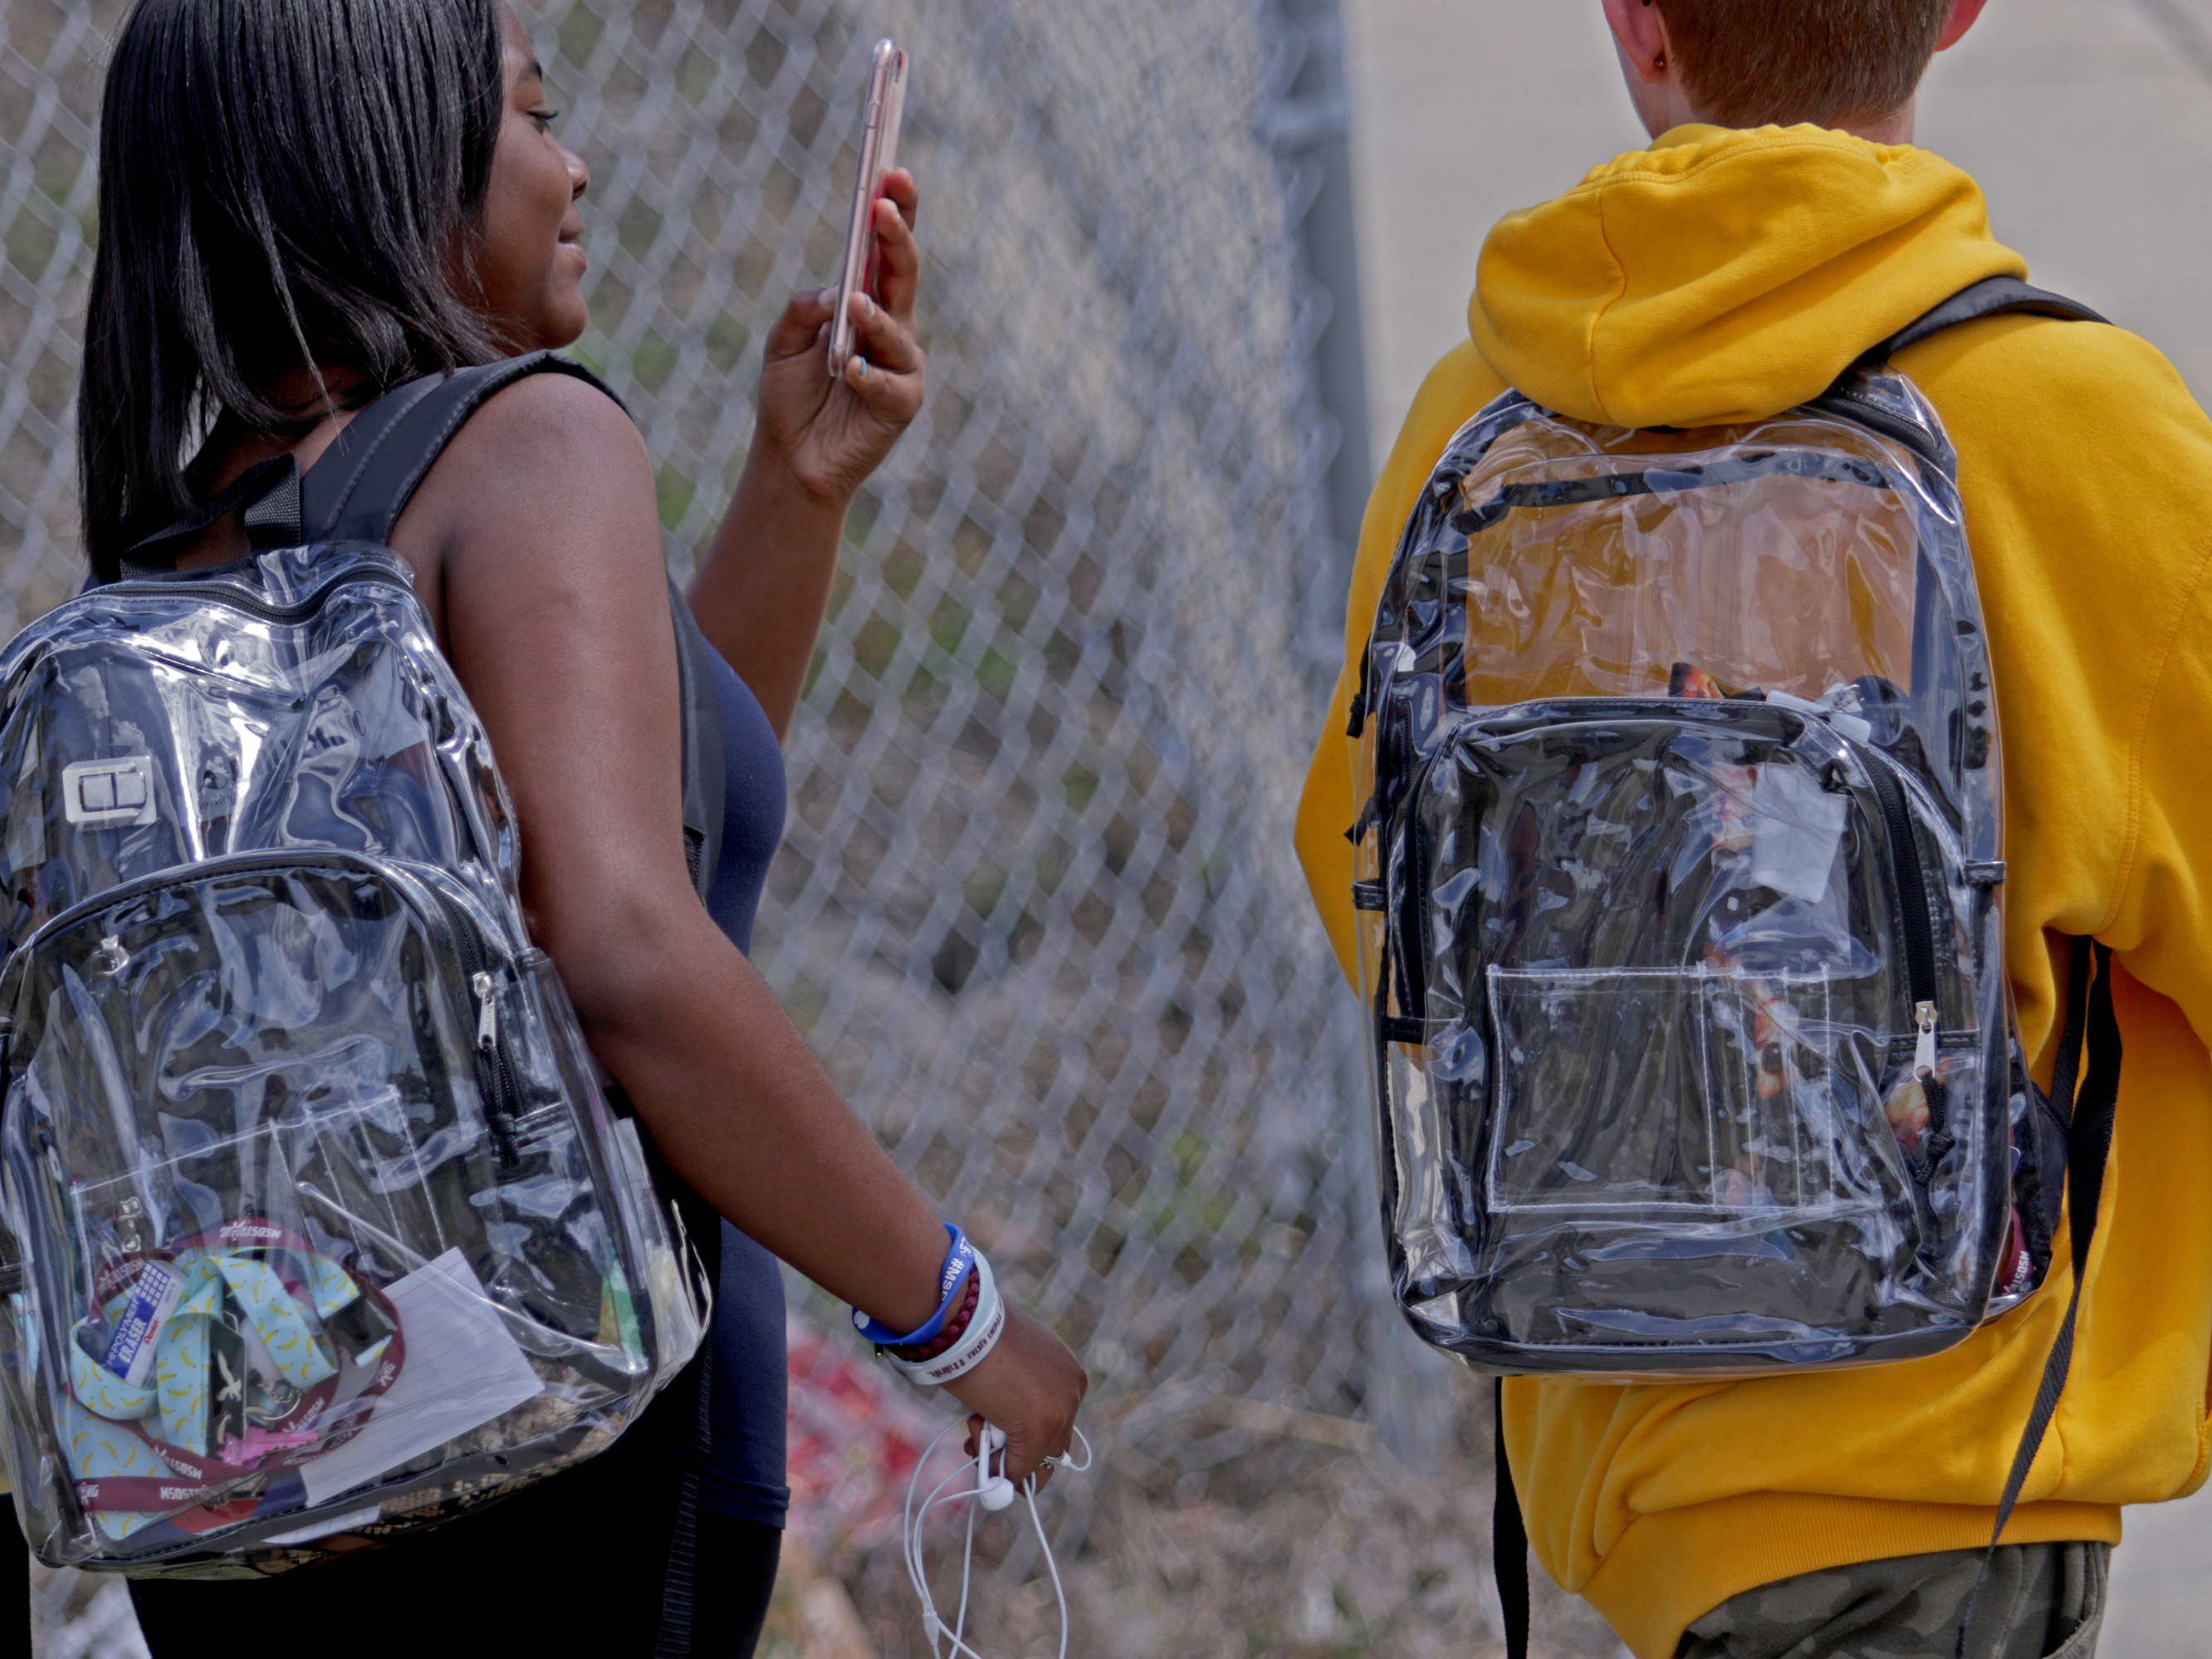 Making Schools Safer: Harsh Consequences, Or Second Chances?